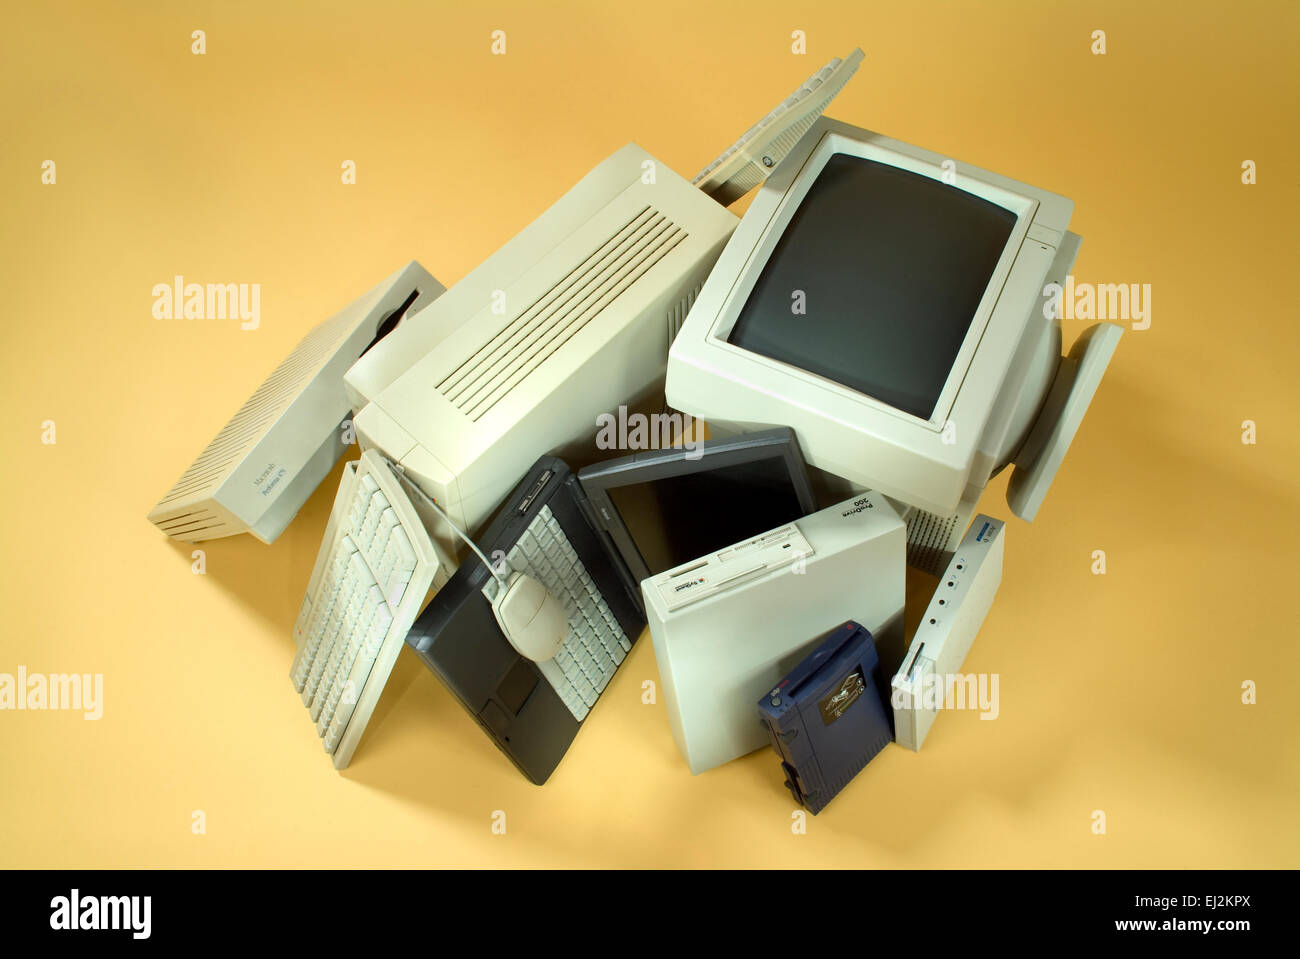 Old computer equipment on a pile. - Stock Image